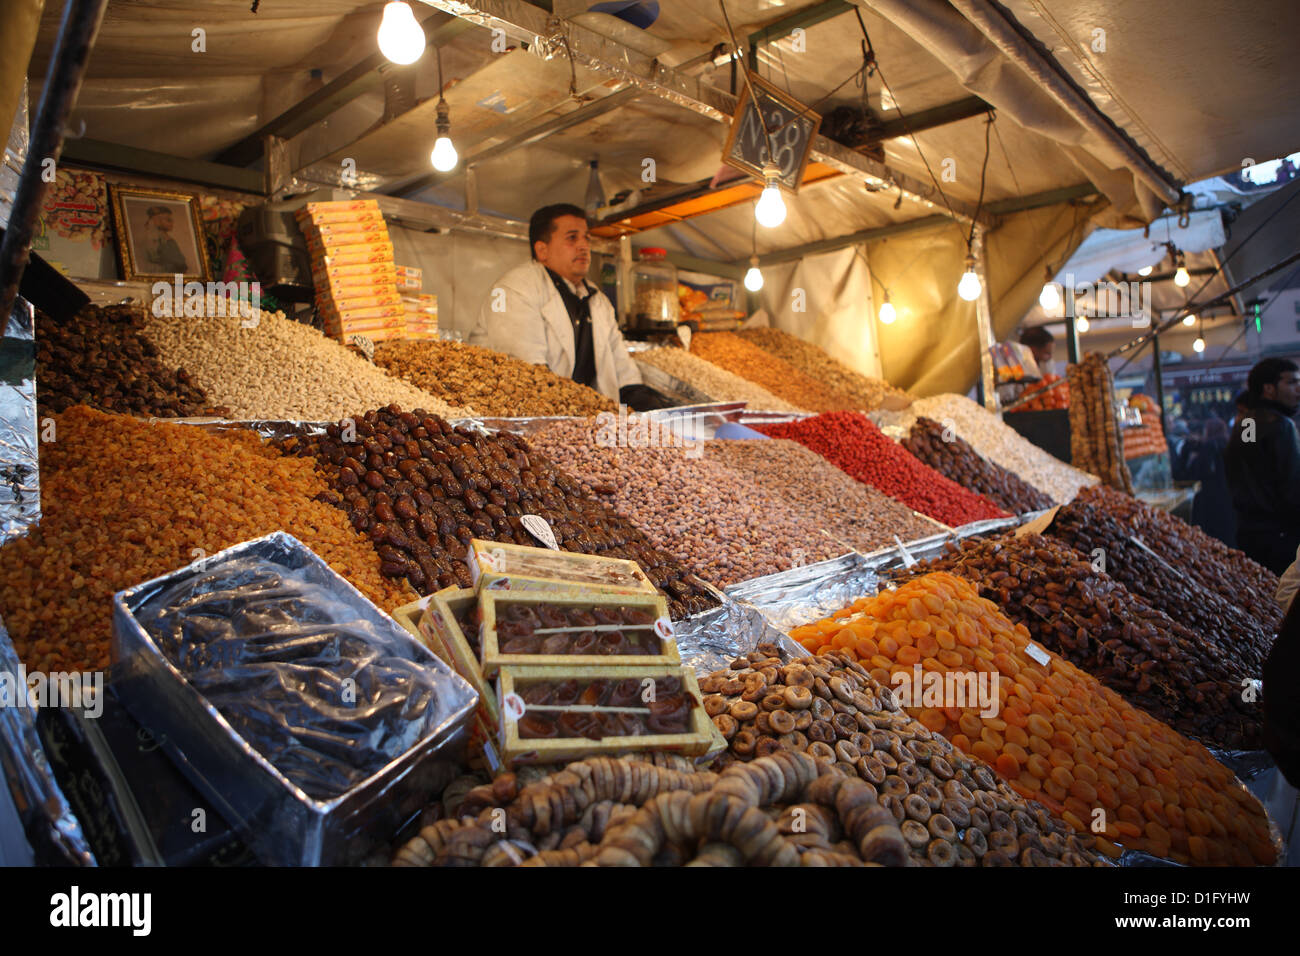 Dried fruit seller, Djemaa el Fna, Marrakech, Morocco, North Africa, Africa - Stock Image